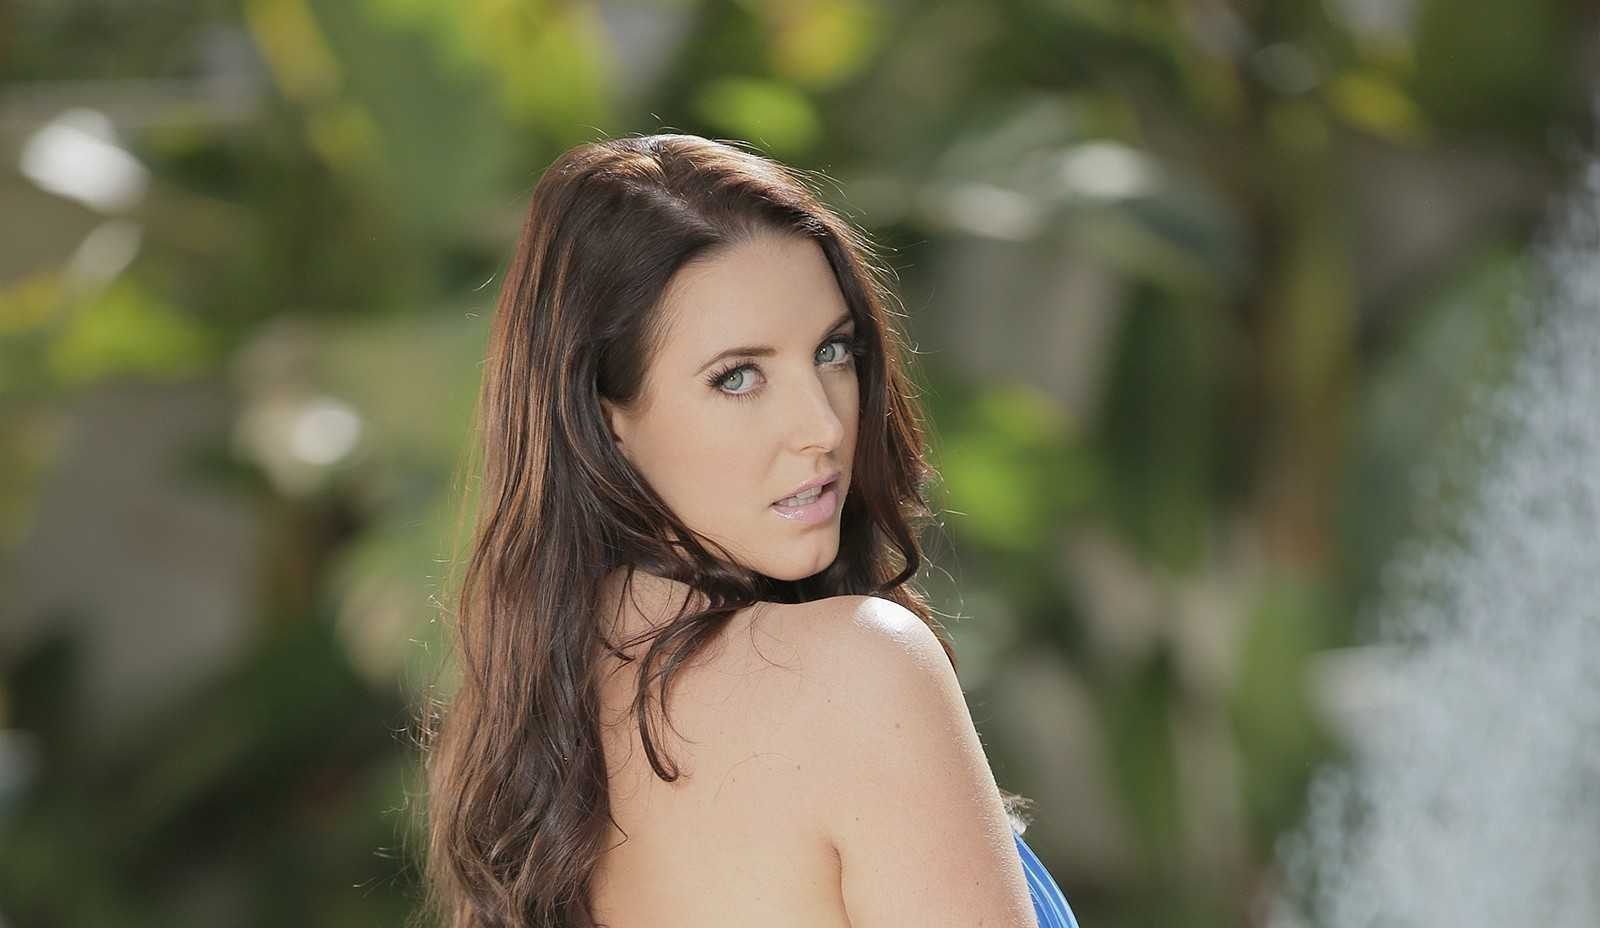 Angela White - Body Measurements - Height - Weight - Eye Color